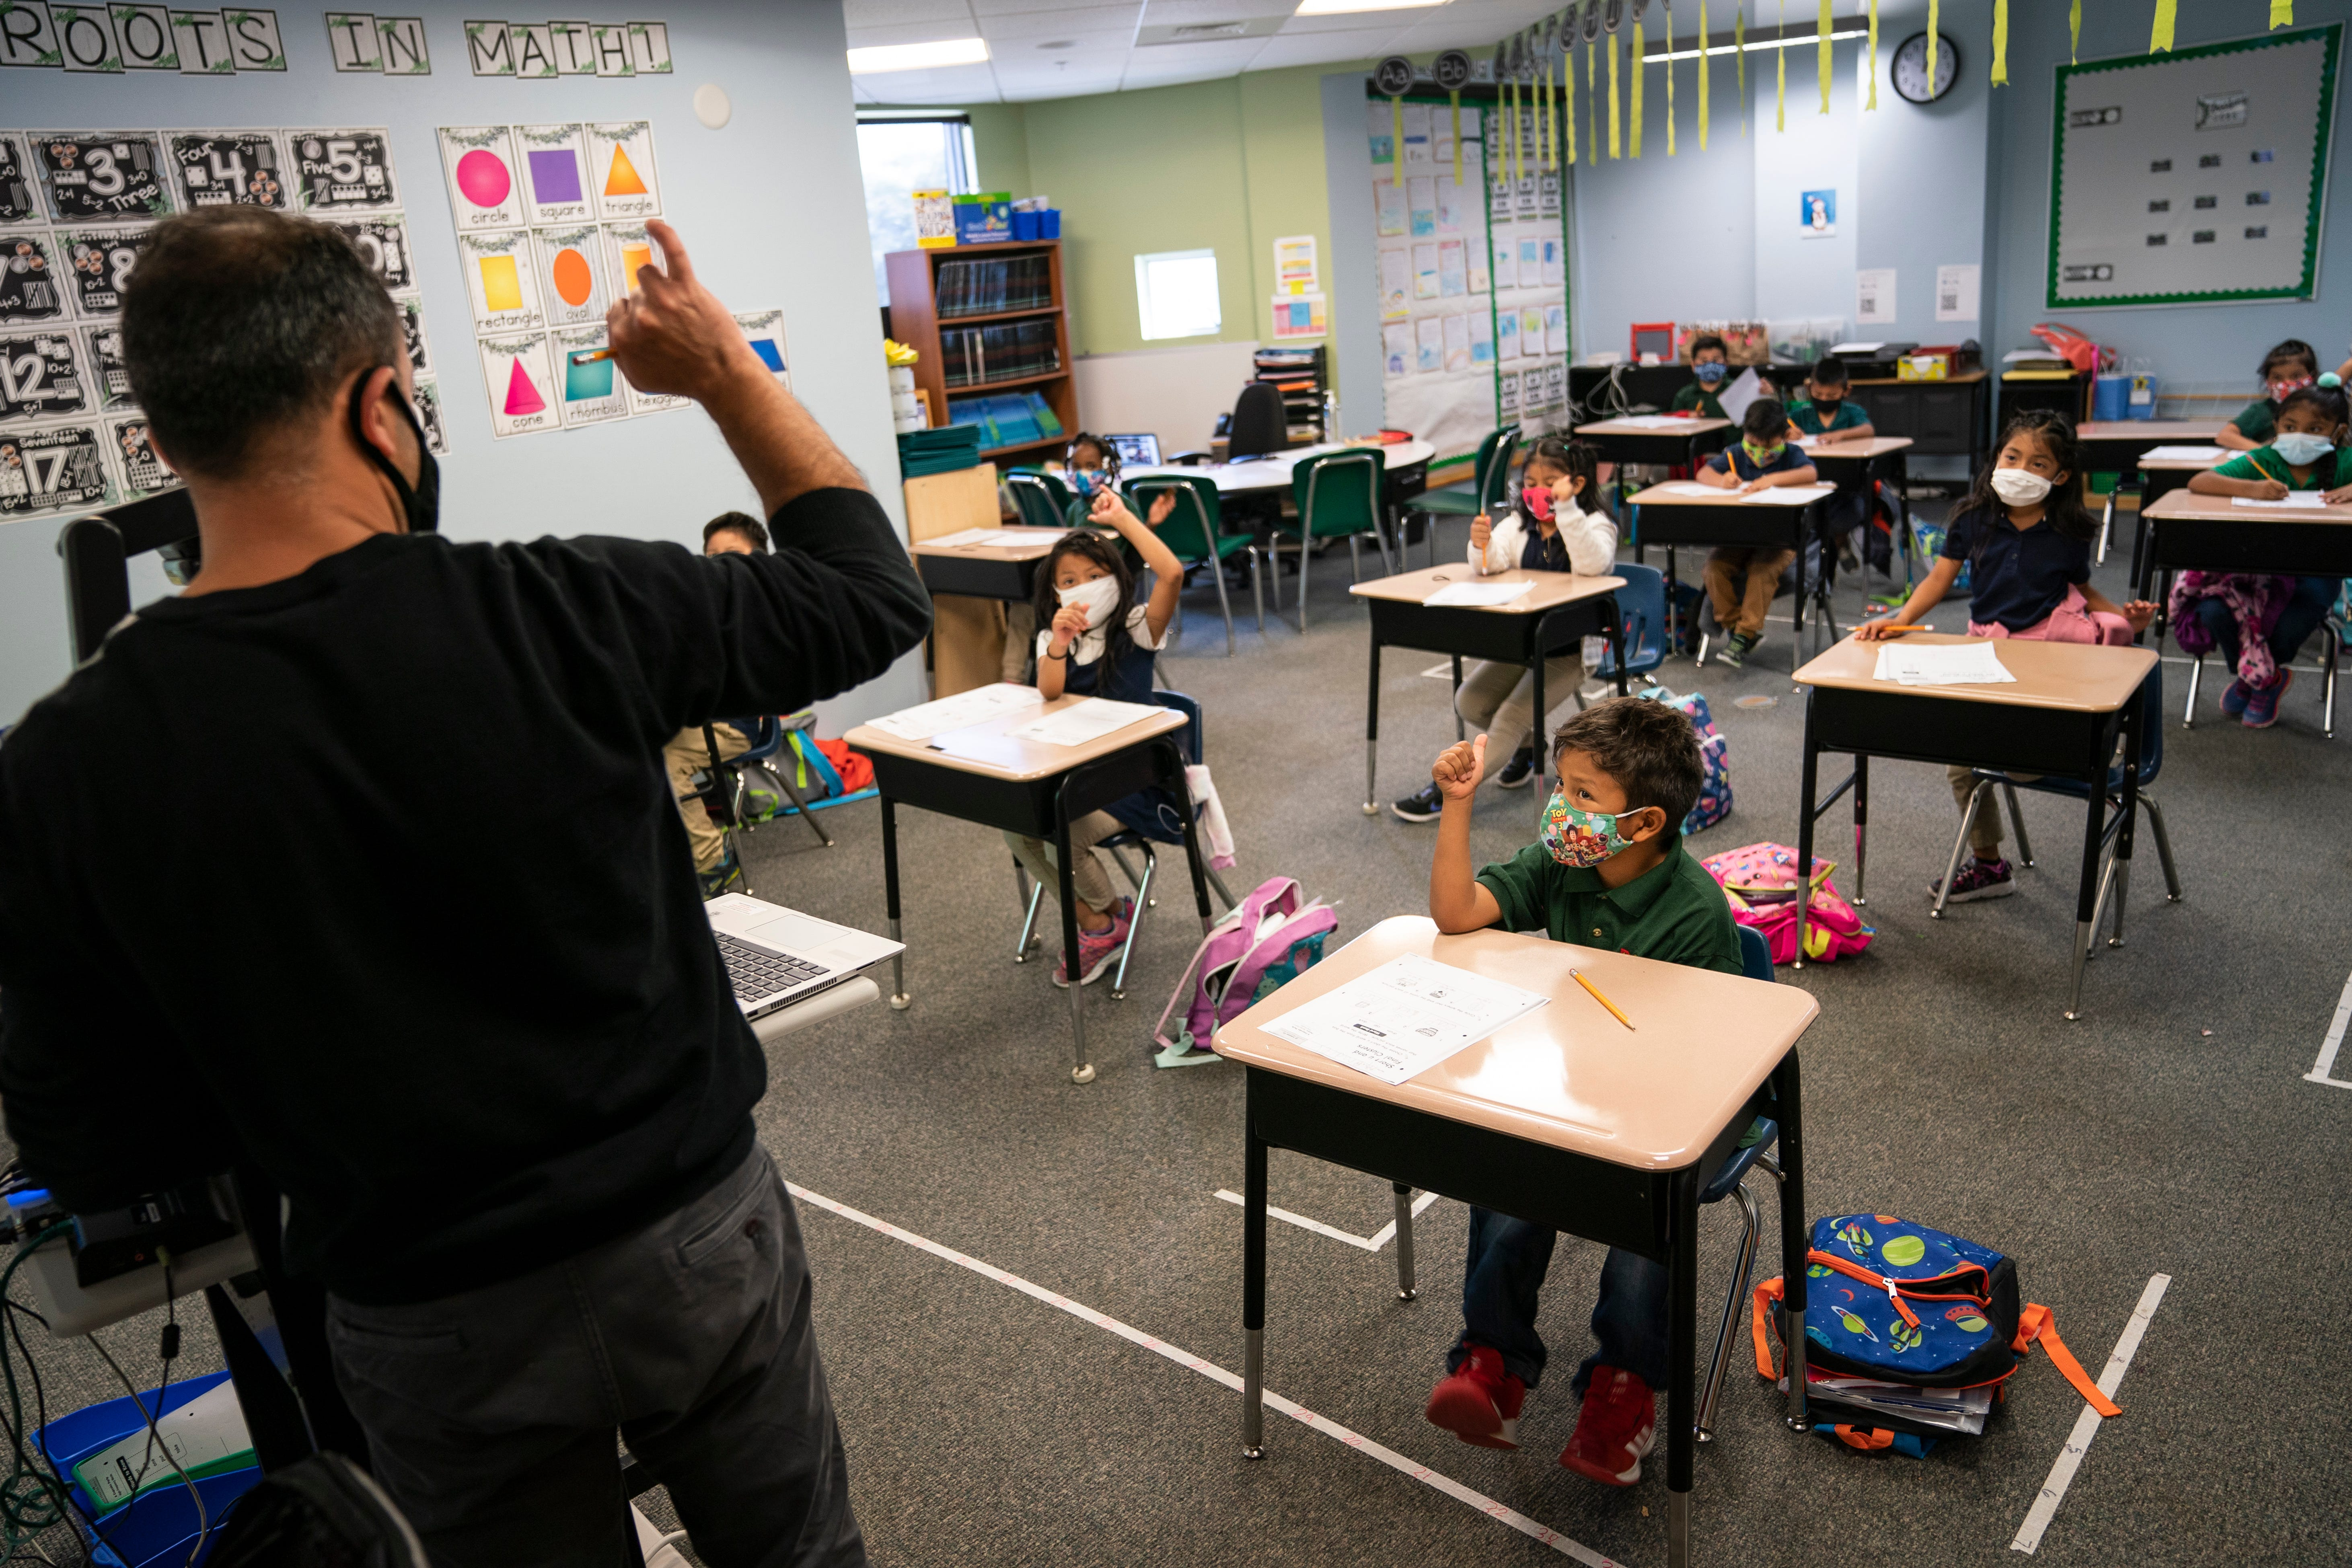 Ozgur Dursun asks his first-graders to hold up their pinkies during a classroom activity at RCMA Immokalee Community School. Migrant students face educational challenges every year as they move back and forth between schools while traveling with their families, but the coronavirus pandemic has created additional challenges and stressors.